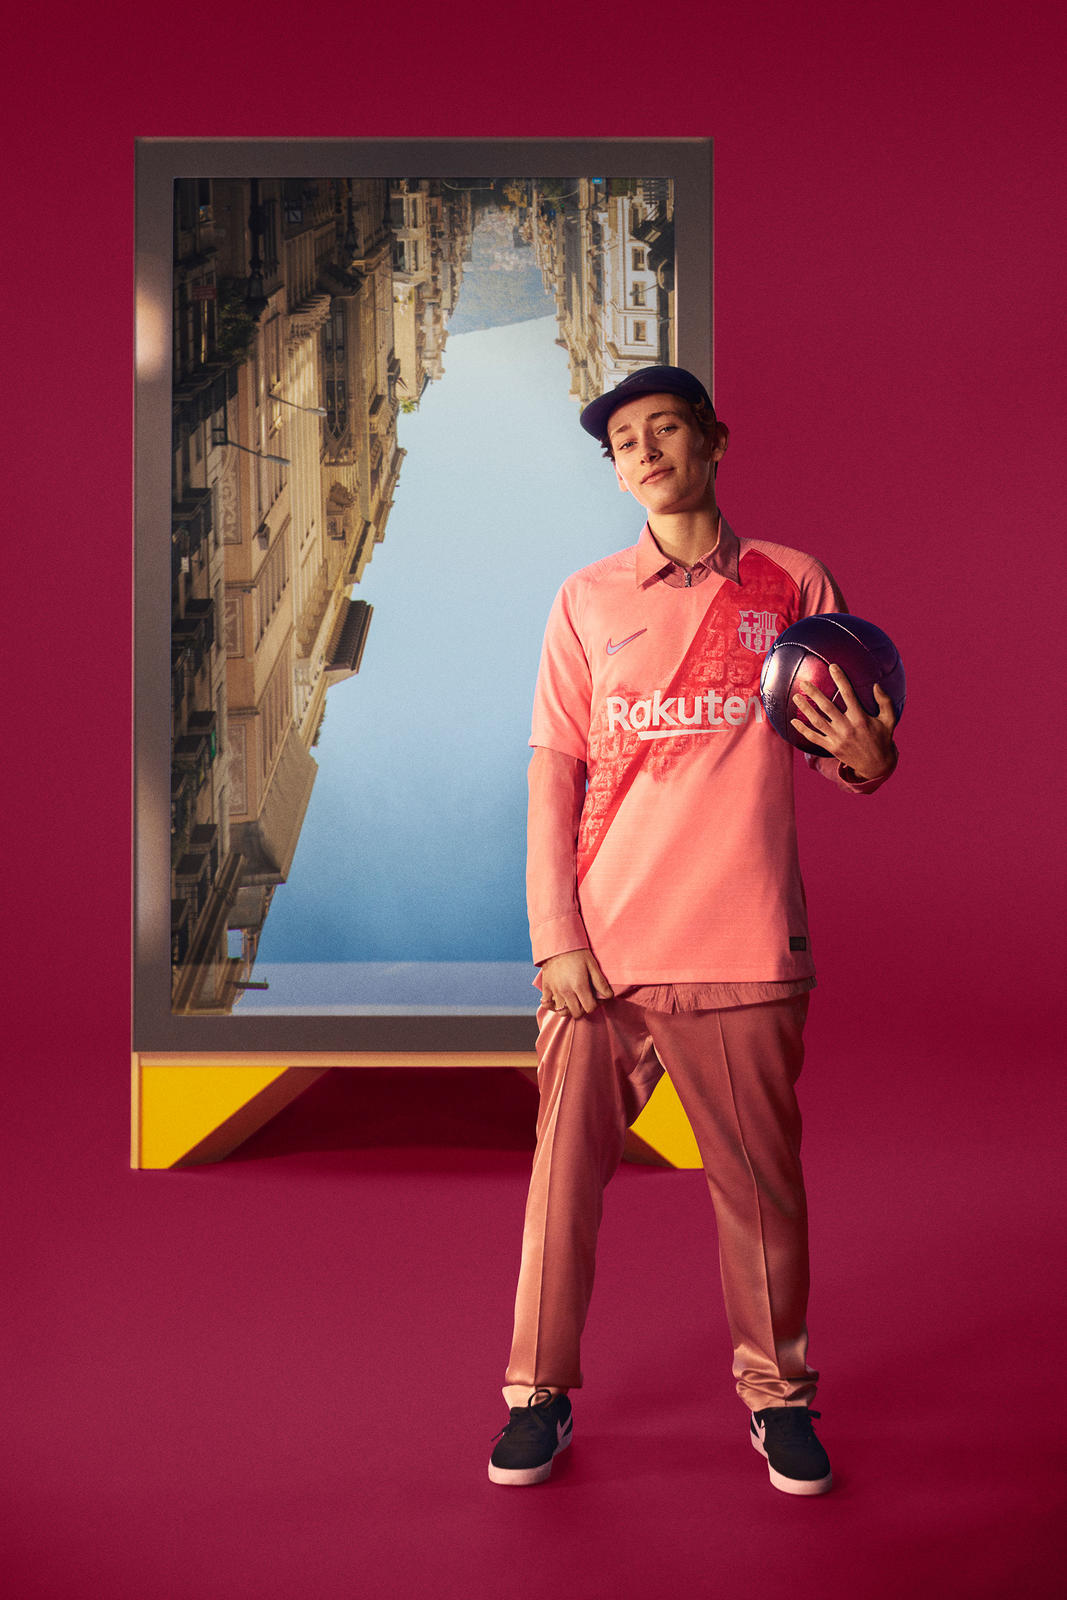 f1873dc85f2 FC Barcelona's 2018-19 Third Kit Continues a Bold and Beautiful Celebration  of the City